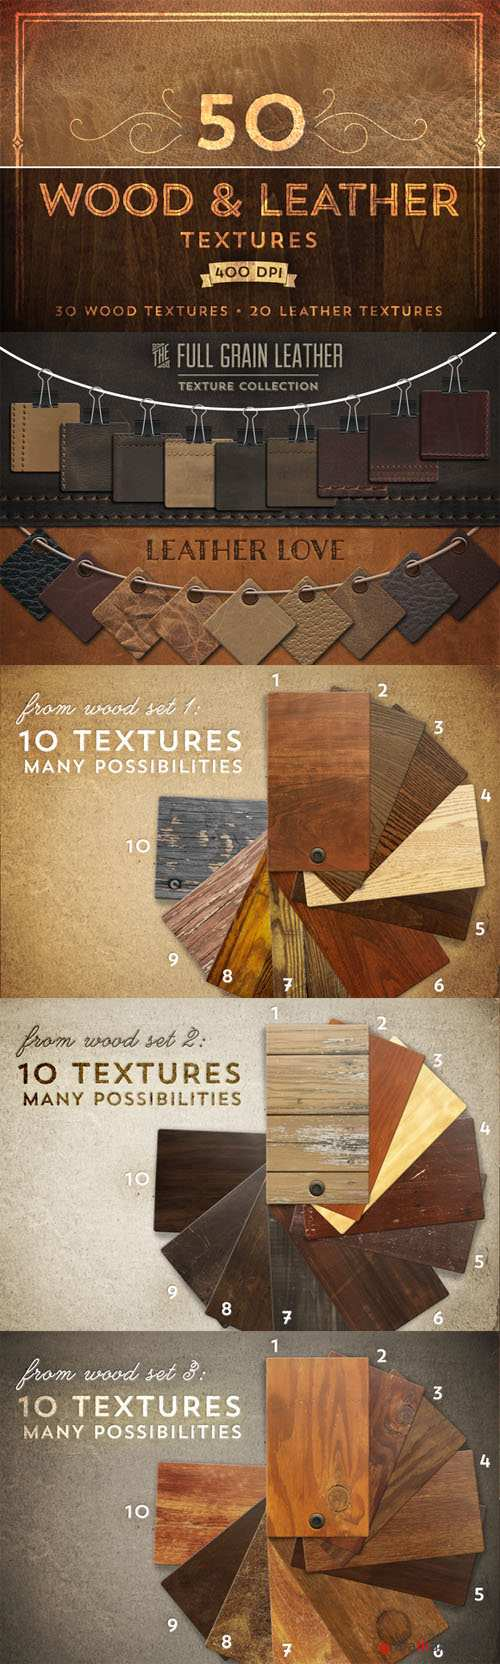 50 Wood & Leather Textures - CM 22188